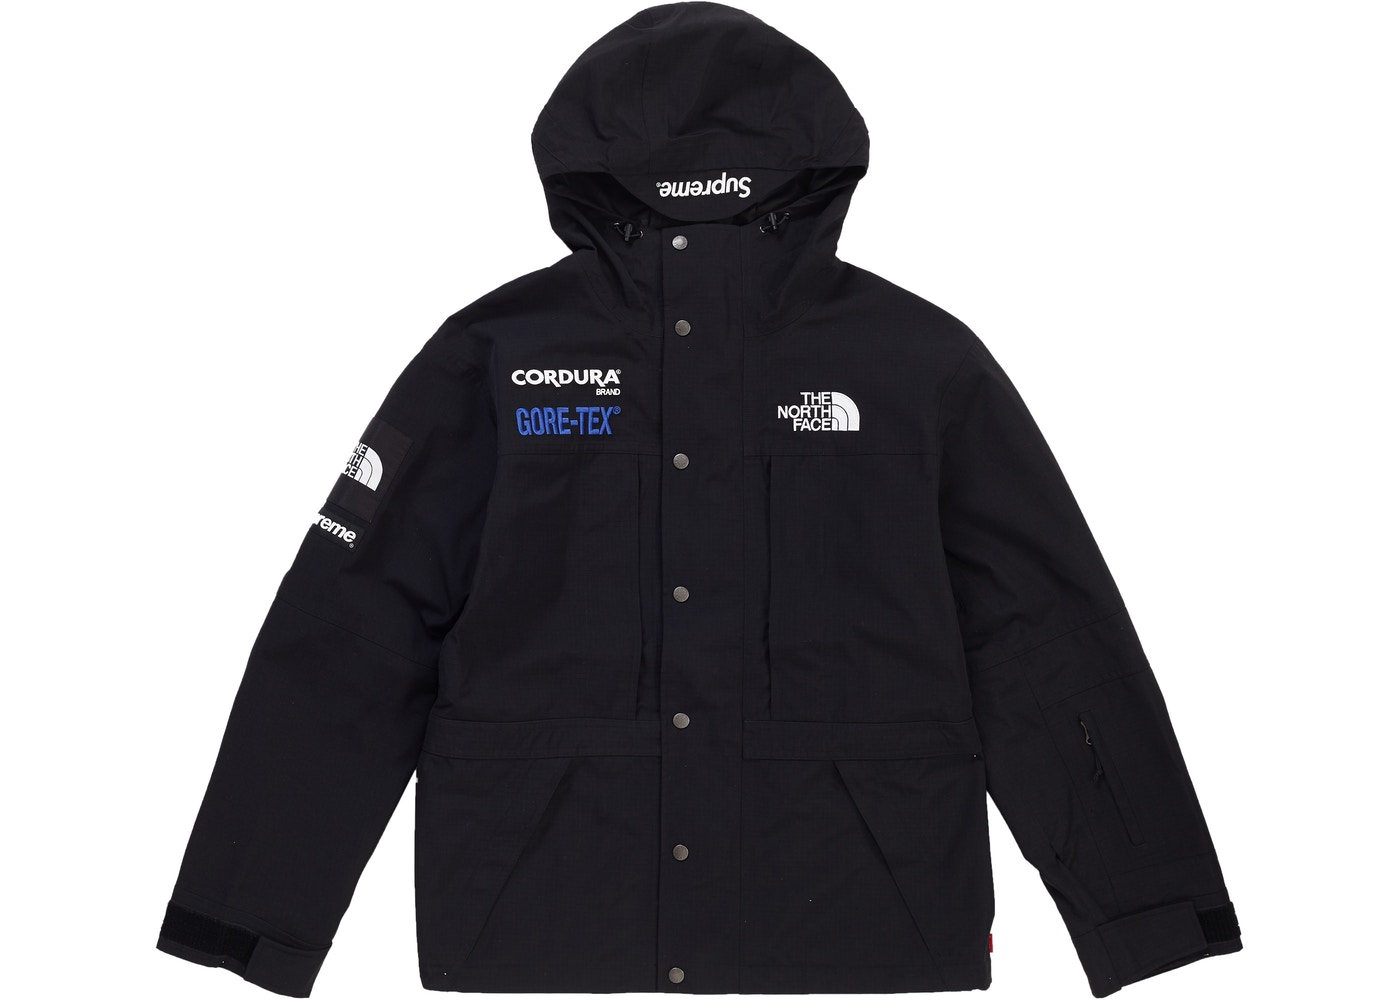 cc2578b8c Supreme The North Face Expedition (FW18) Jacket Black